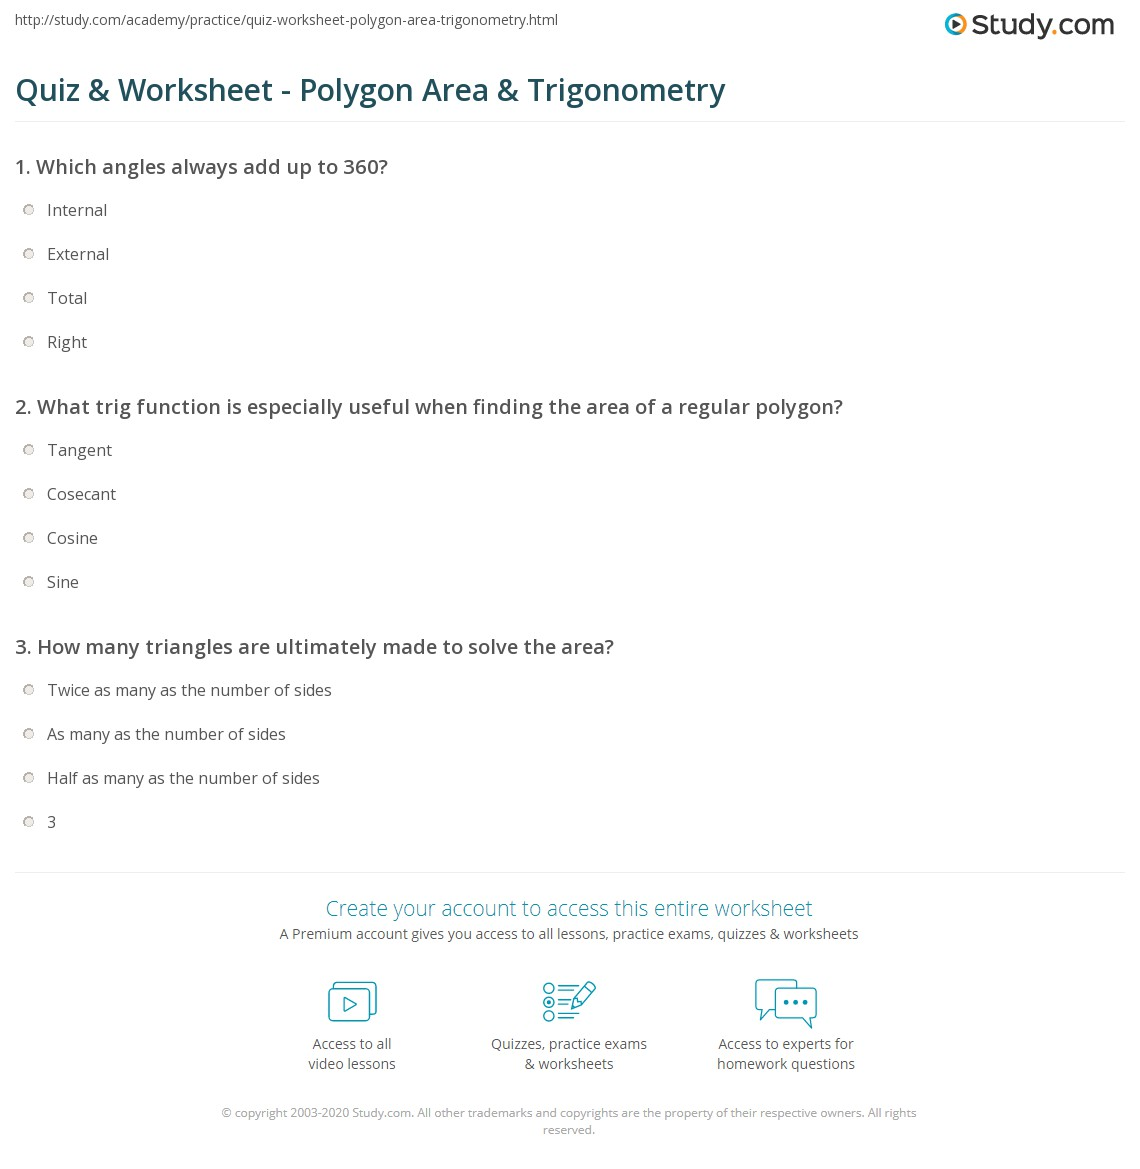 Quiz   Worksheet   Polygon Area   Trigonometry   Study also Area and perimeter worksheets  rectangles and squares further  also  additionally Area of circles review  article    Khan Academy additionally How to Calculate the Area of Shaded Regions   Sciencing as well Geometry Problems and Questions with Answers for Grade 9 in addition Statistics And Probability Recent Questions   Chegg further Geometry Probability Worksheets Area Of A Sector Practice Sectors 9 in addition Geometric probability area problems worksheet  1061330   Worksheets likewise Geometric Probability Area Problems Shaded Worksheet together with  in addition Perimeter   area  video    Area   Khan Academy together with Printable Worksheets for Teachers  K 12    TeacherVision in addition pre worksheets   Geometry Formulas Cheat Sheet Google Search as well Area and perimeter worksheets  rectangles and squares. on geometric probability area problems worksheet